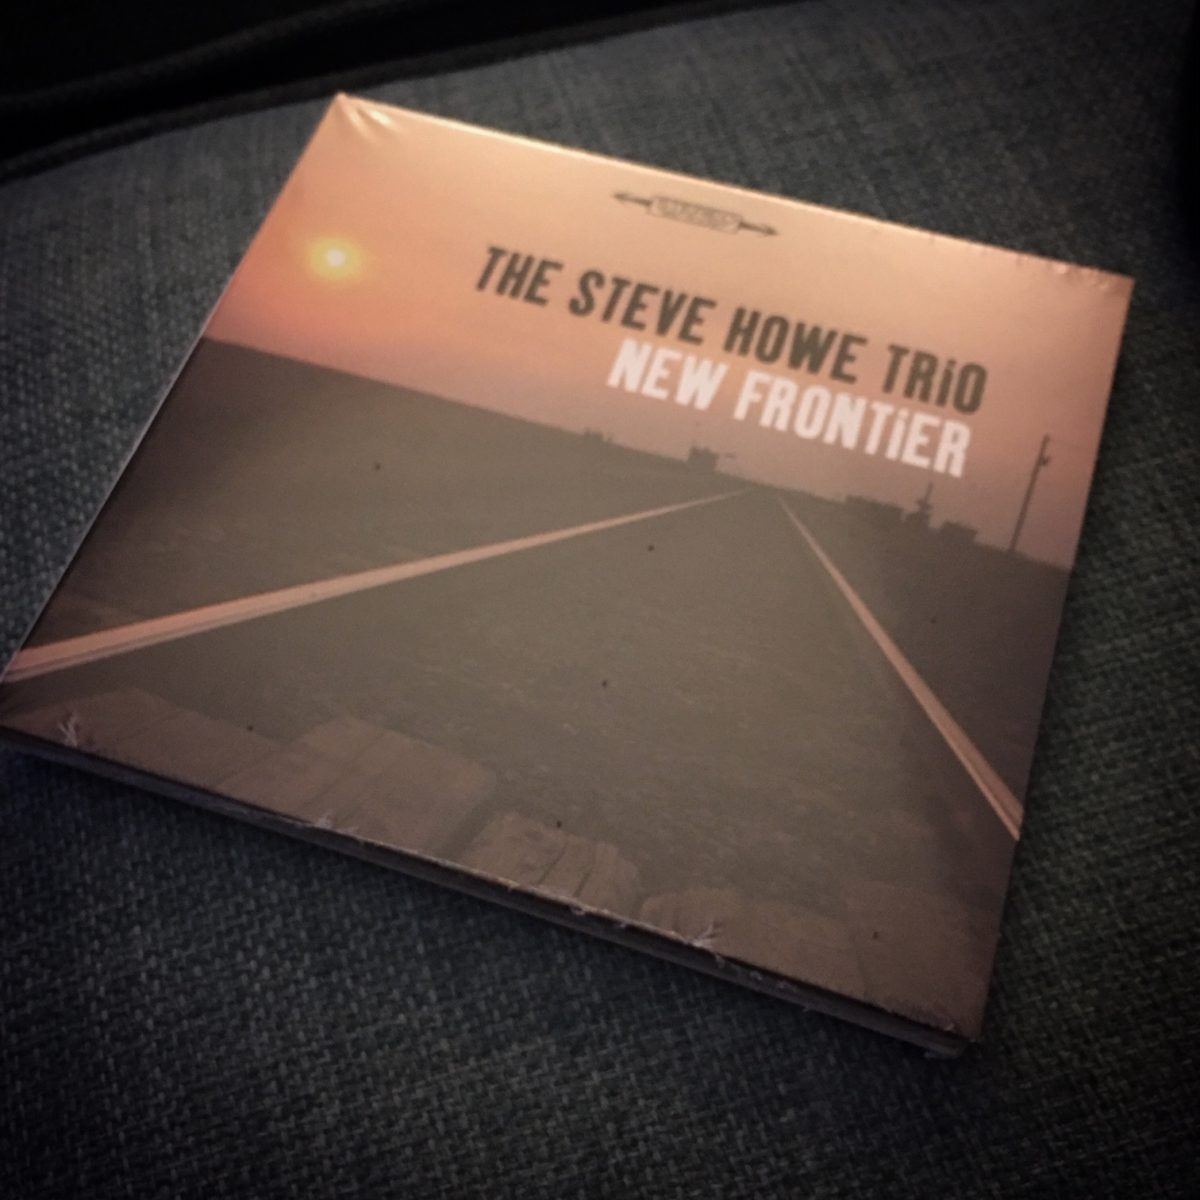 New Frontier by the Steve Howe Trio – 402